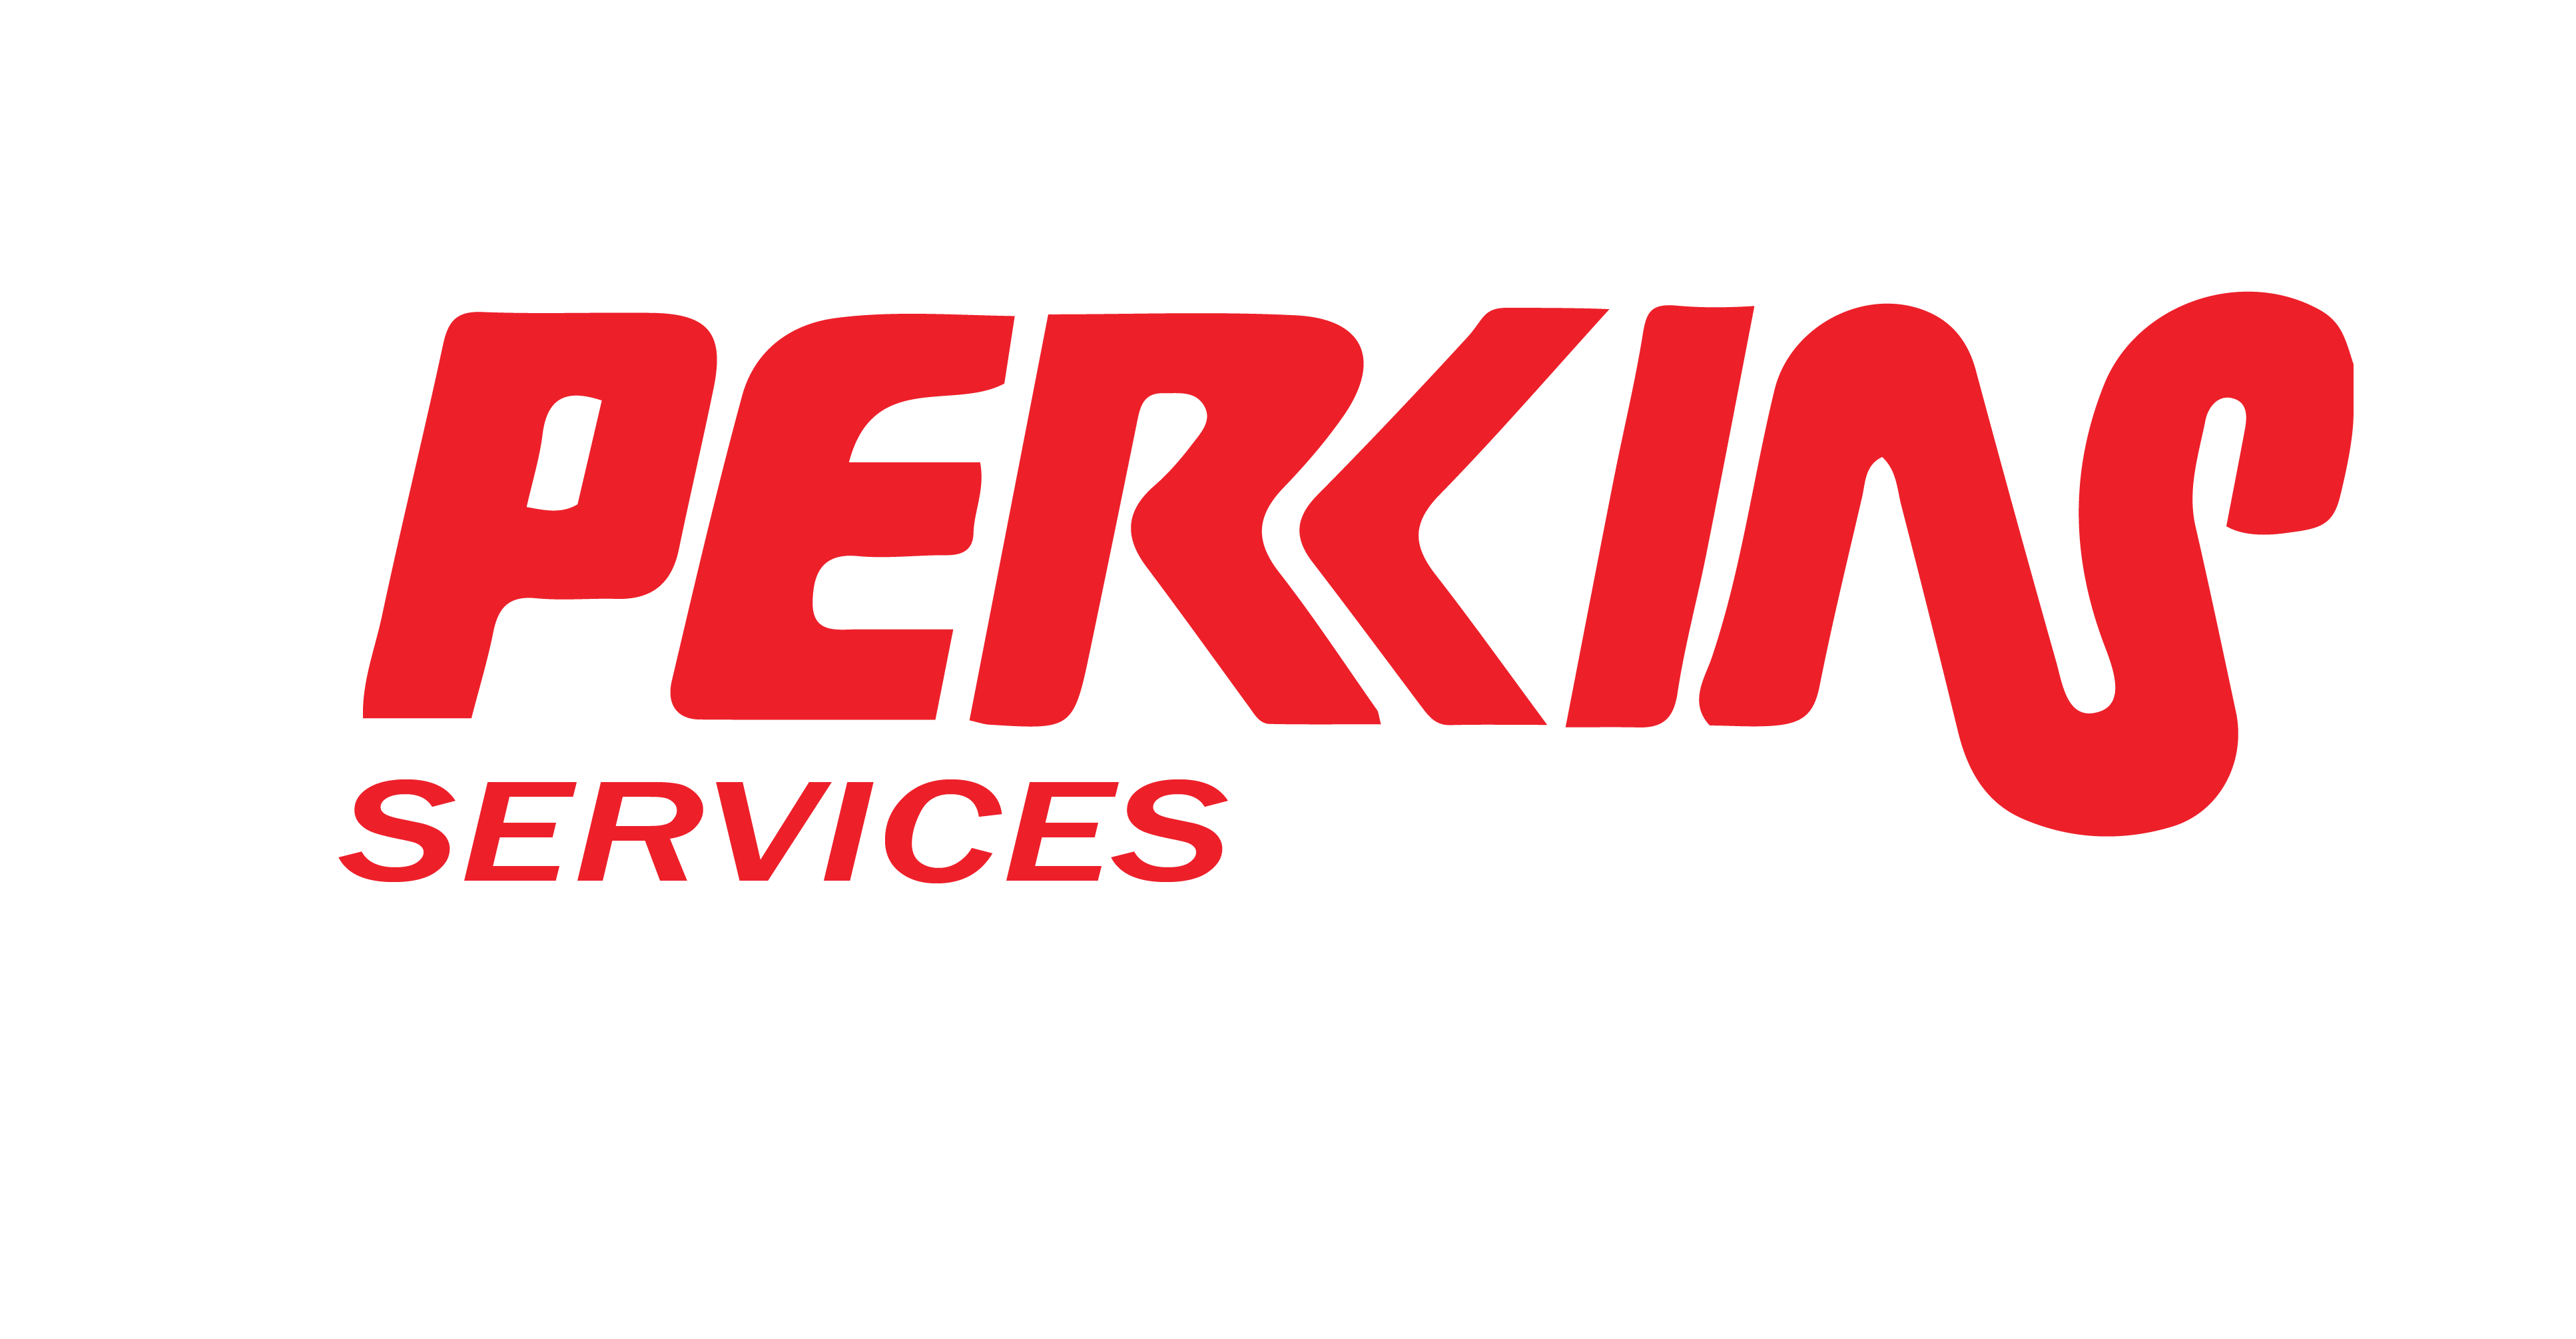 Perkins Services